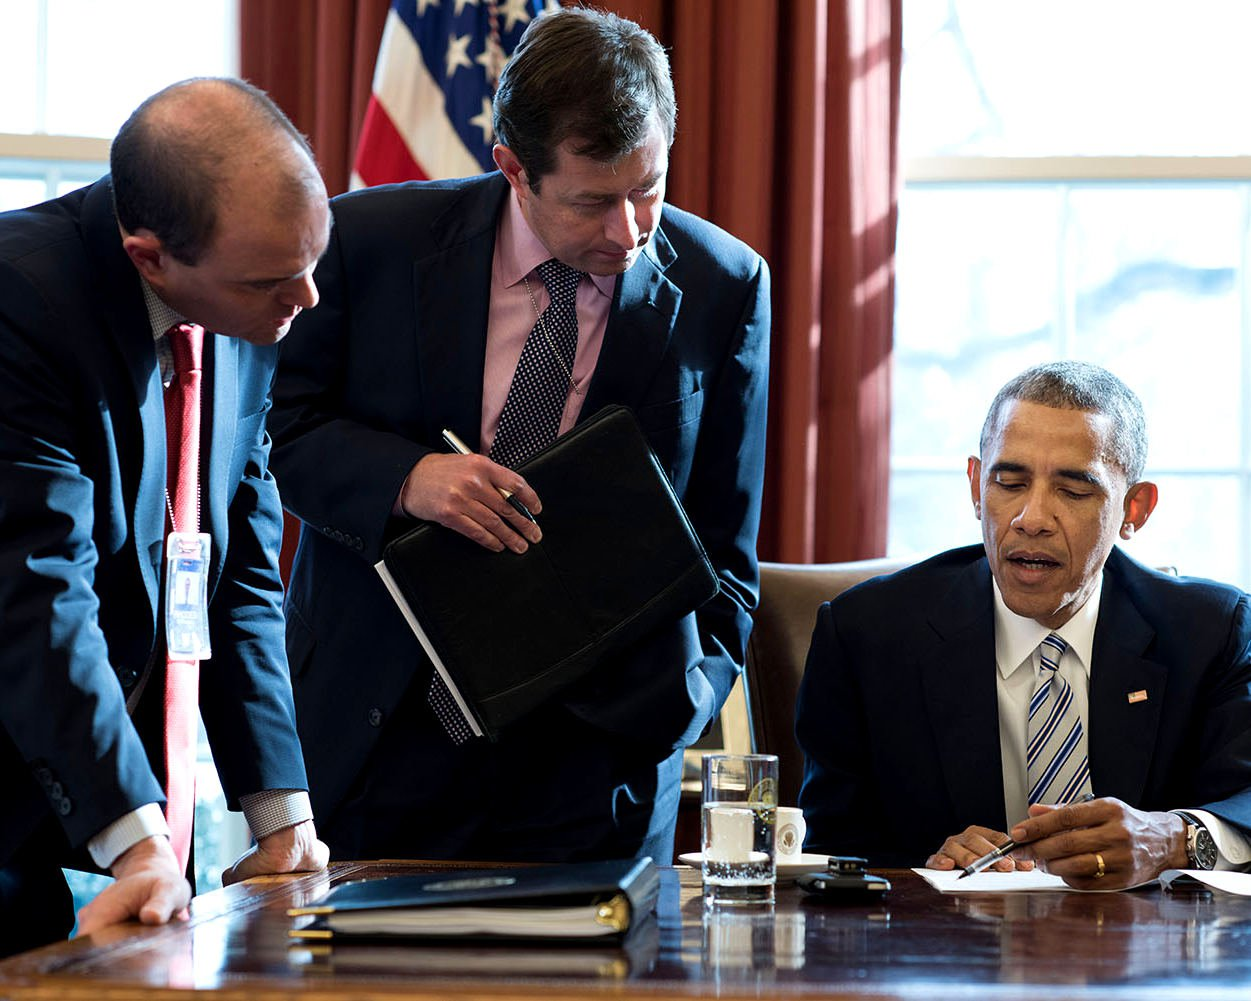 PRESIDENT BARACK OBAMA & OTHERS IN THE OVAL OFFICE IN 2015 - 8X10 PHOTO (ZY-530)